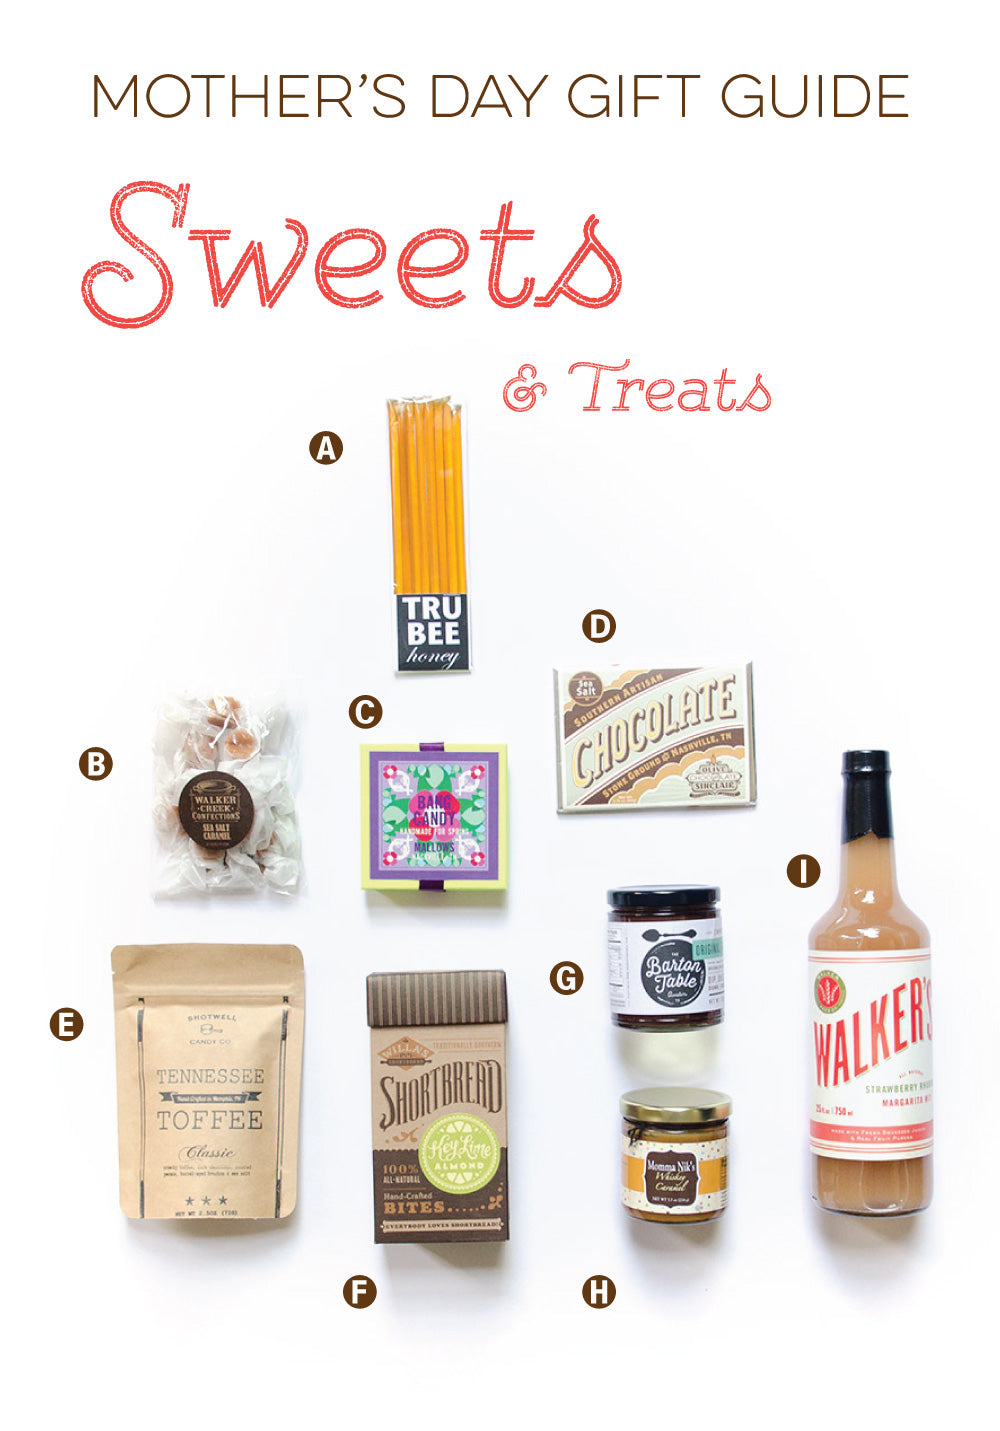 Mother's Day Gift Guide - Sweets and Treats